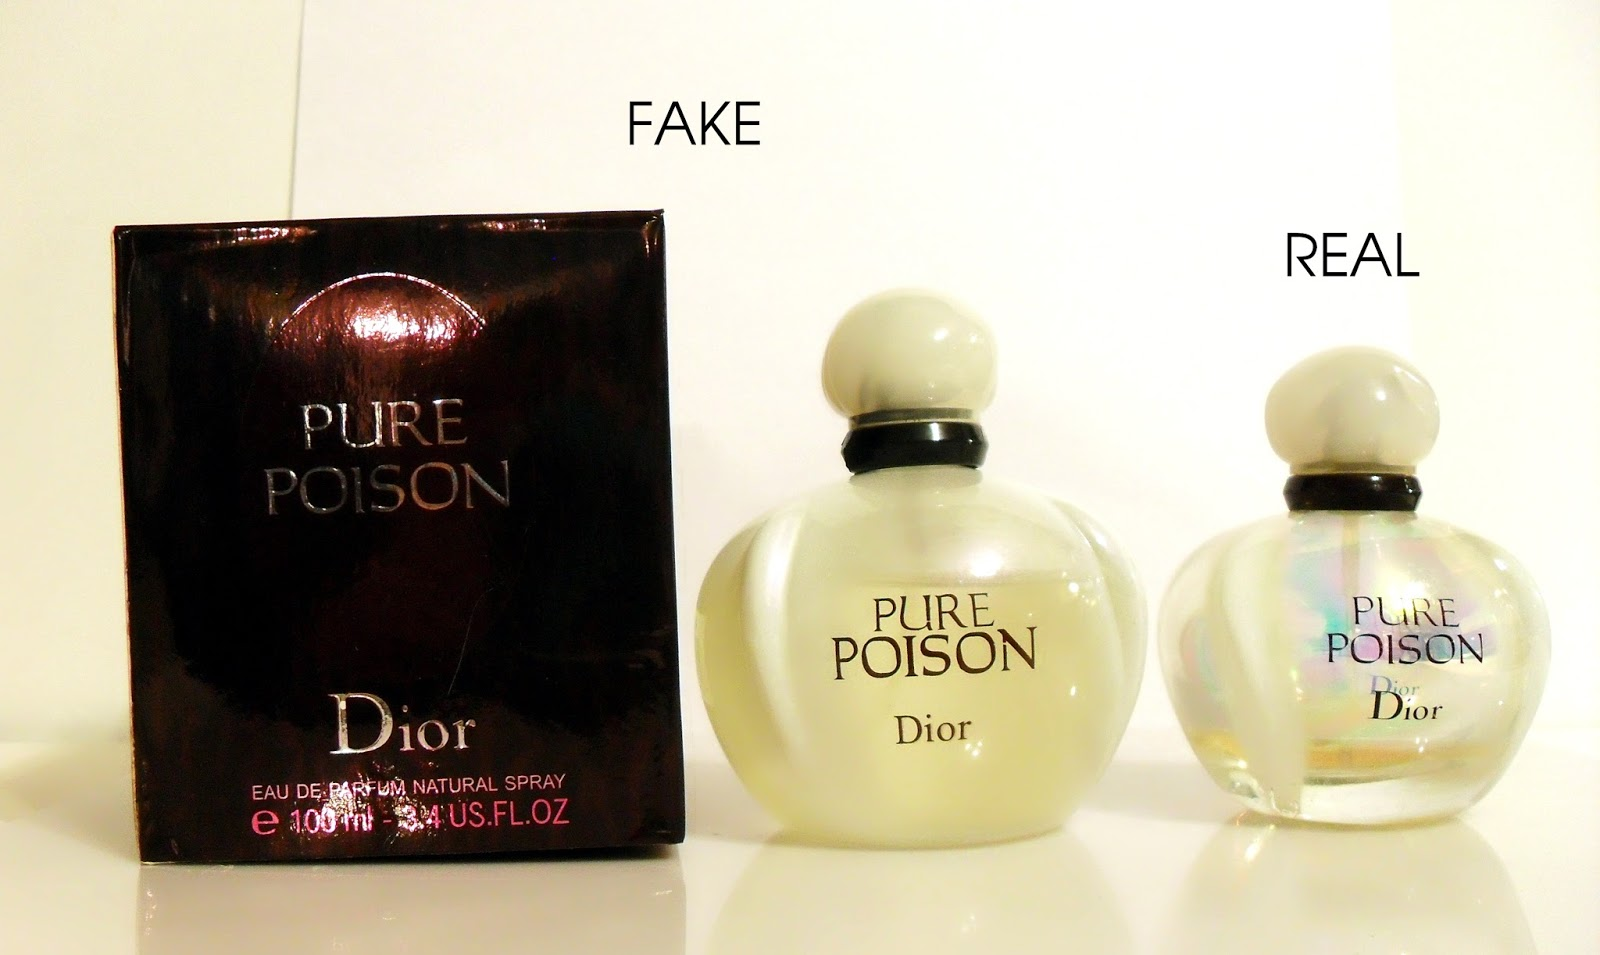 By these signs, you can easily distinguish real perfume from fake